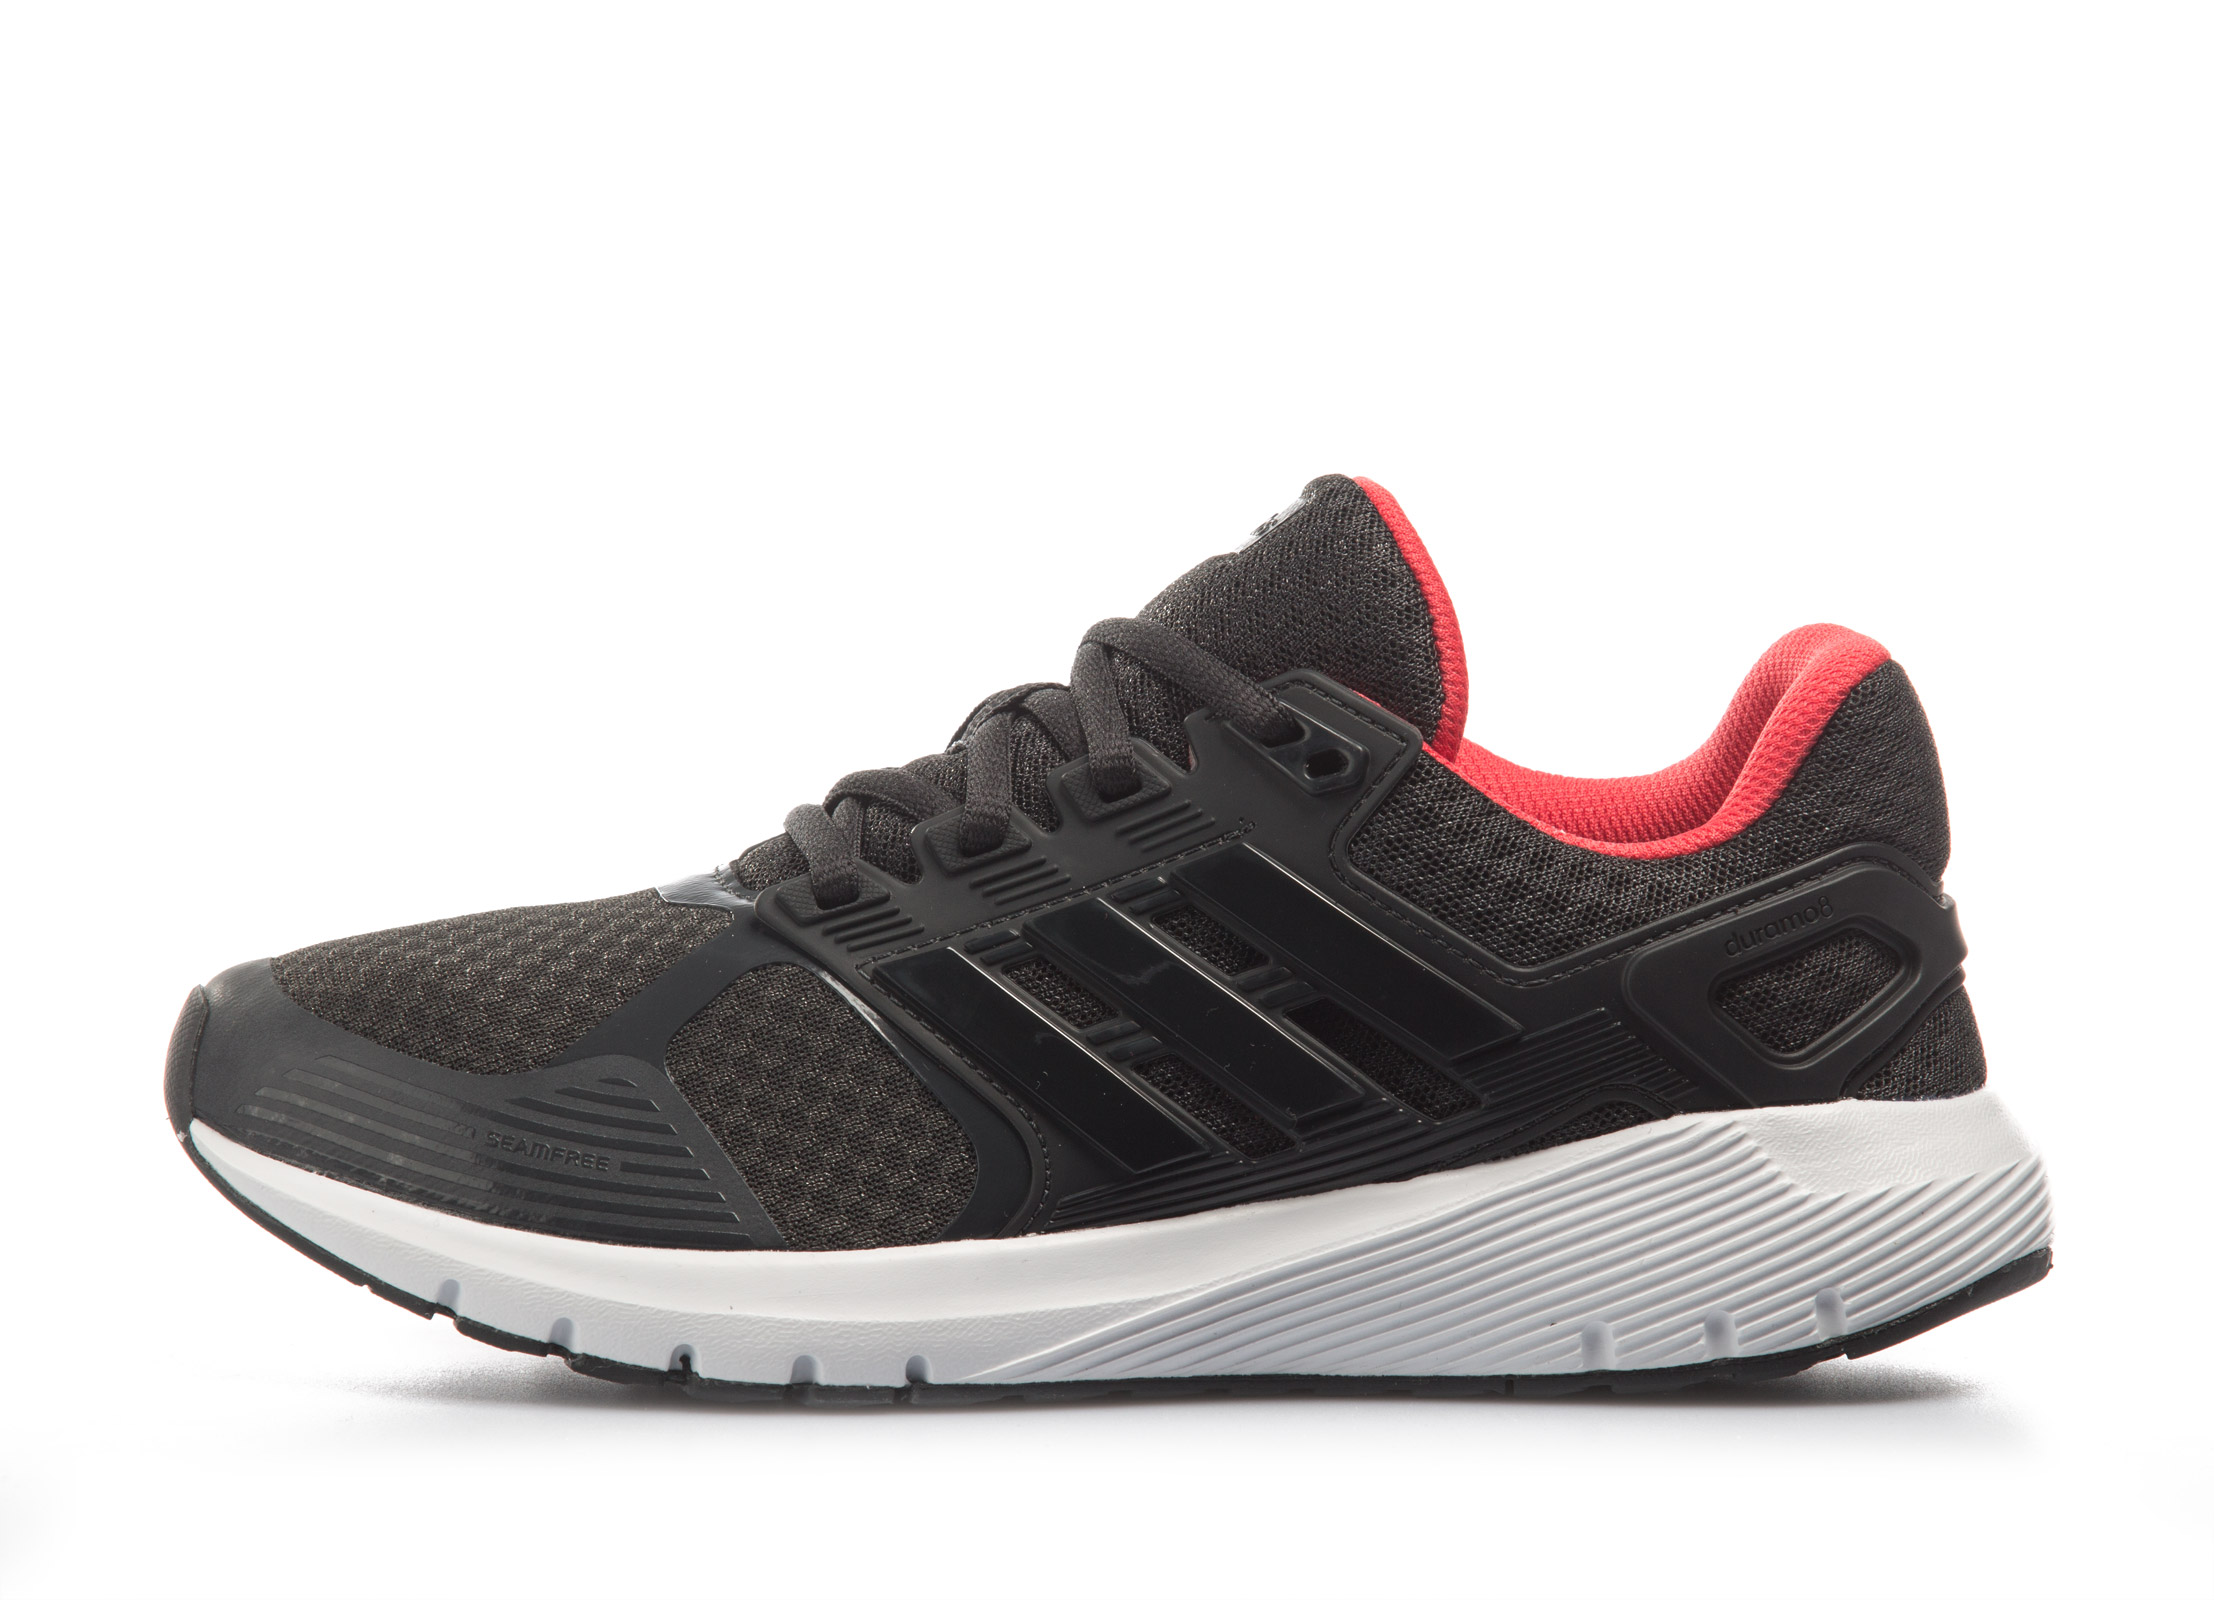 ΥΠΟΔΗΜΑΤΑ RUNNING adidas Performance DURAMO 8 W CP8750 Ανθρακί